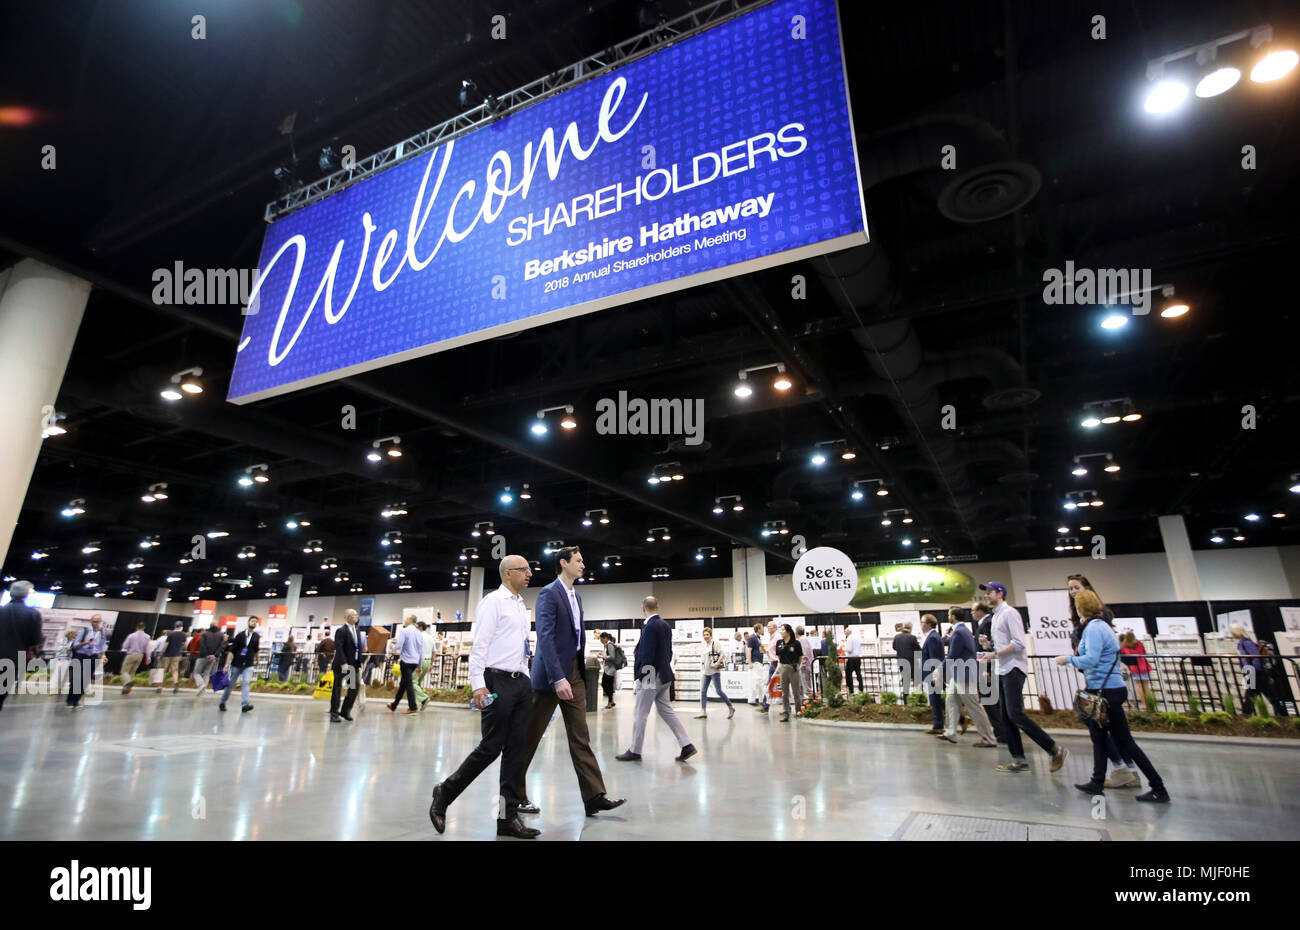 Omaha, USA. 5th May, 2018. People visit an exhibition area for the Berkshire Hathaway's annual shareholders meeting in Omaha, Nebraska, the United States, on May 5, 2018. Berkshire Hathaway held its 2018 shareholders meeting on Saturday, attended by tens of thousands of people from all over the world. Credit: Wang Ying/Xinhua/Alamy Live News Stock Photo